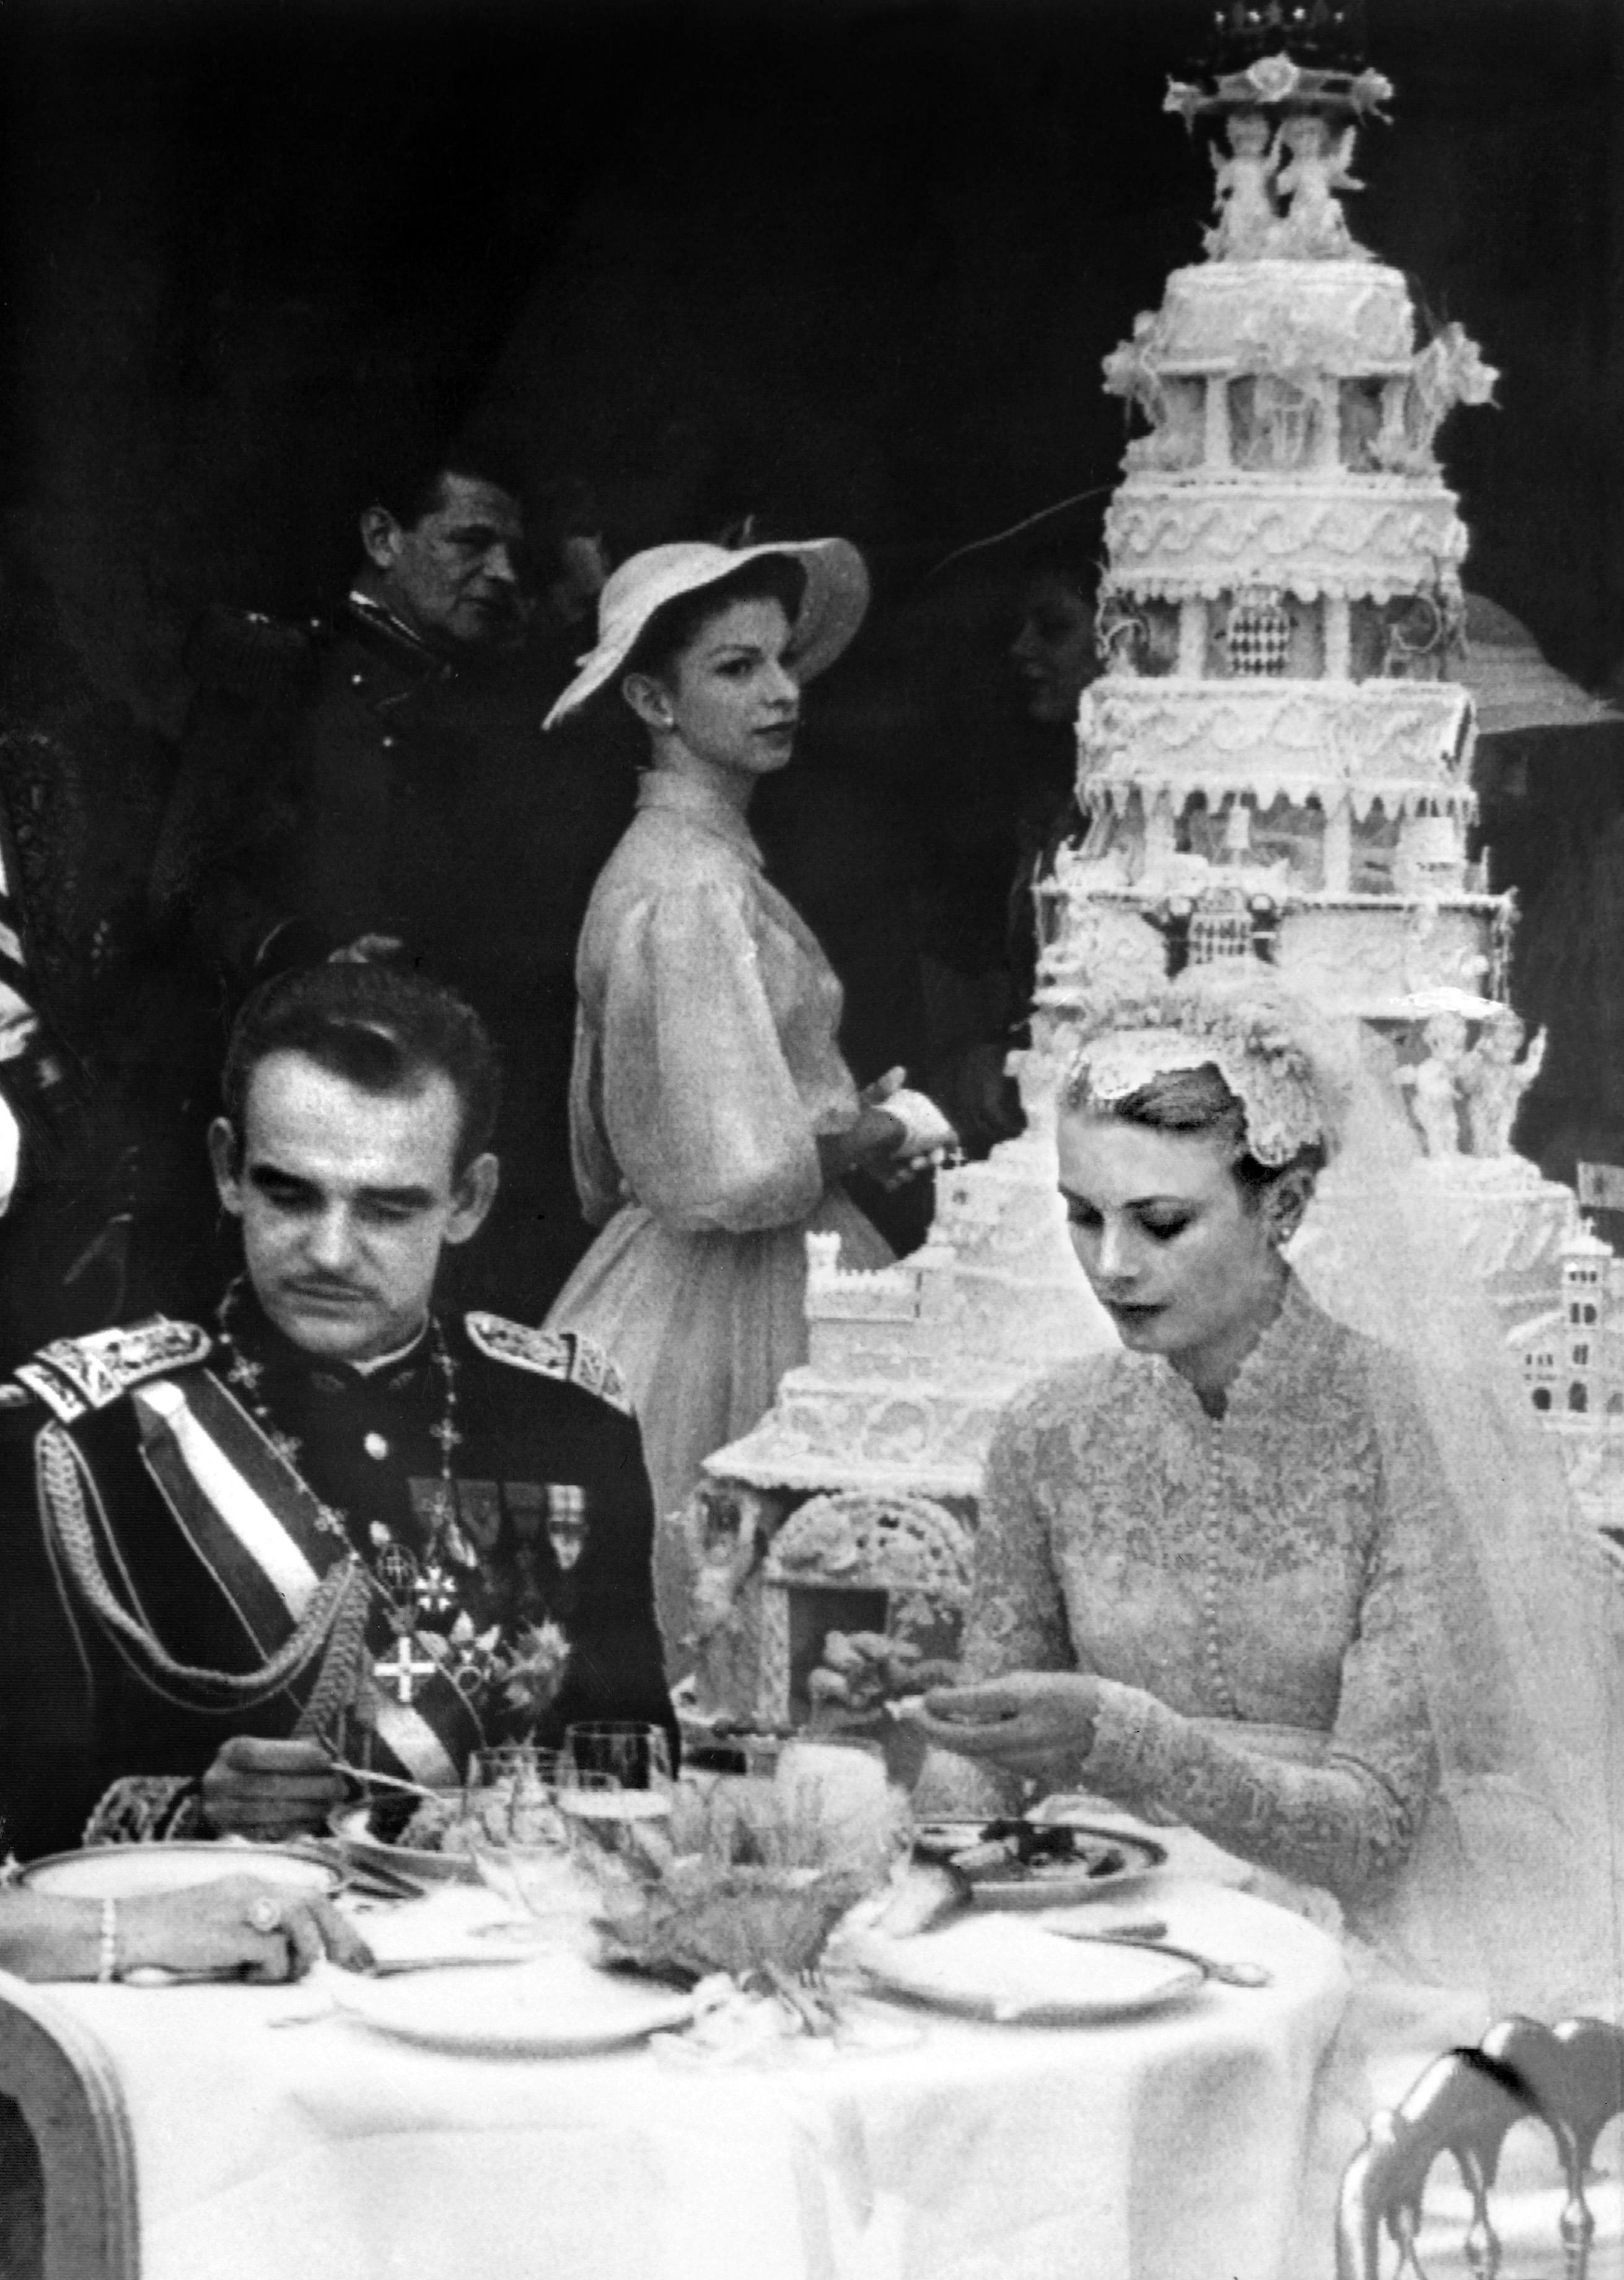 Prince Rainier III of Monaco and US actress Grace Kelly wedding